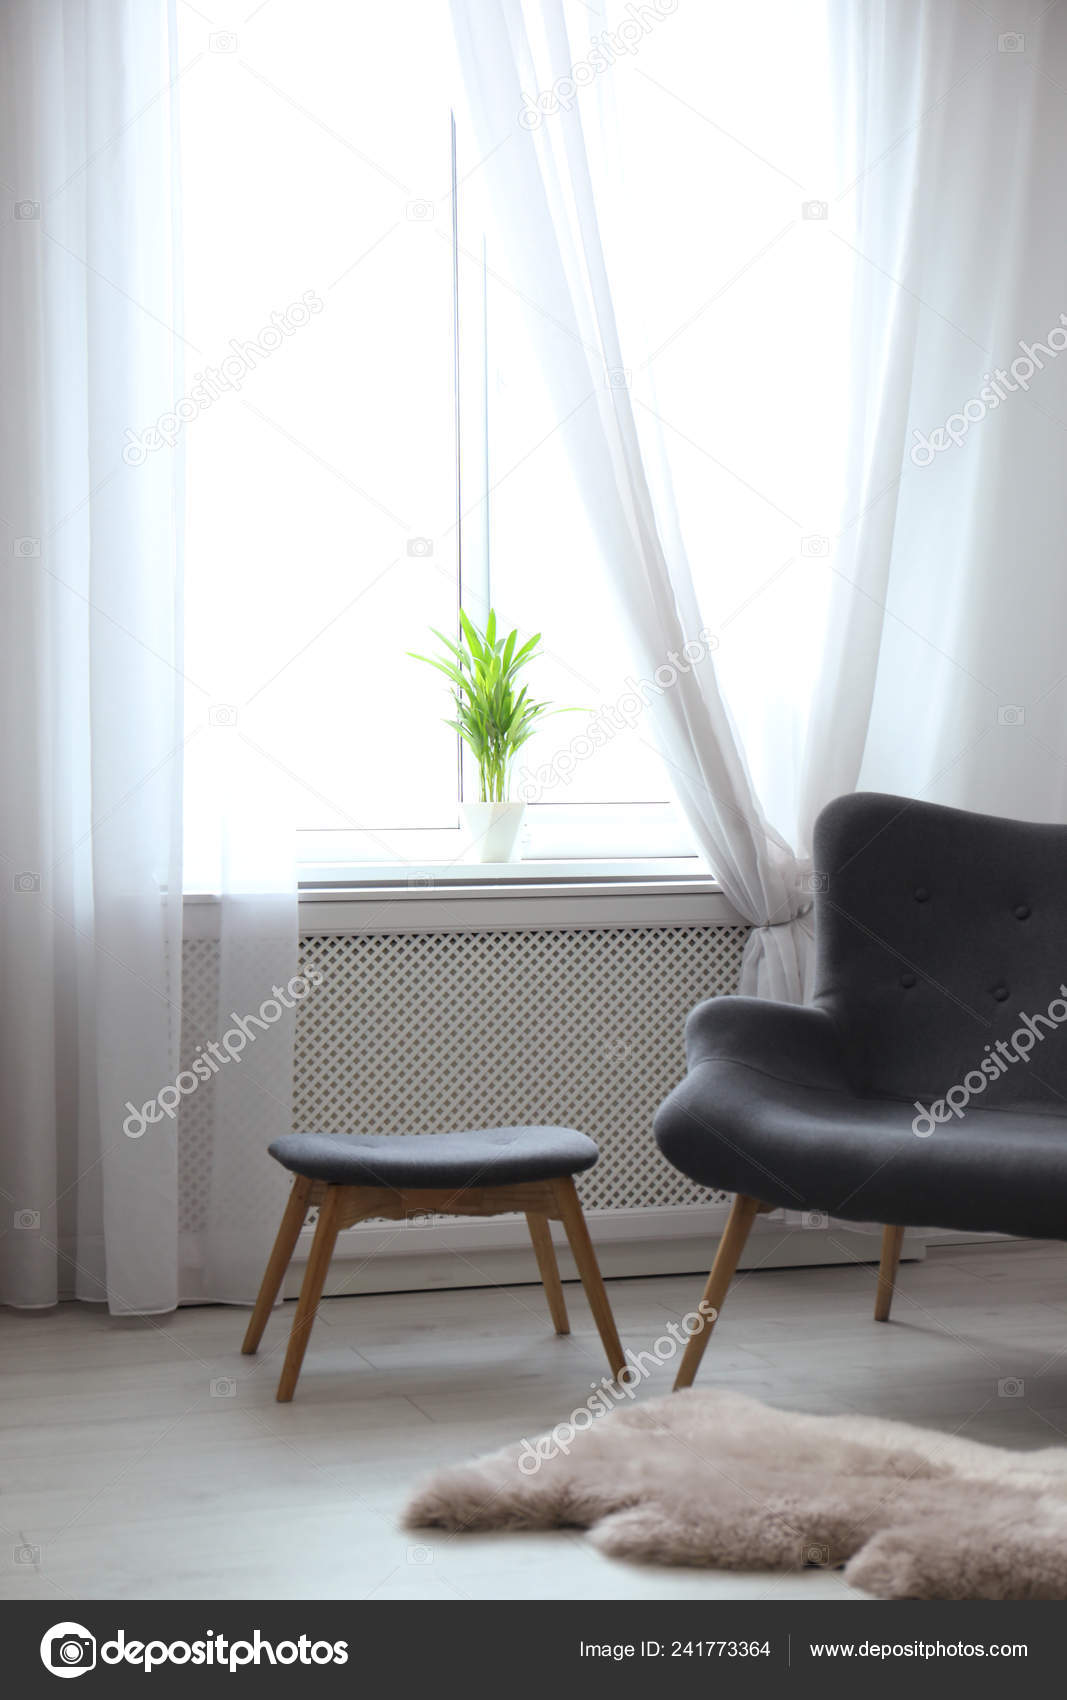 Comfortable Sofa Window Open Curtains Elegant Room Interior Stock